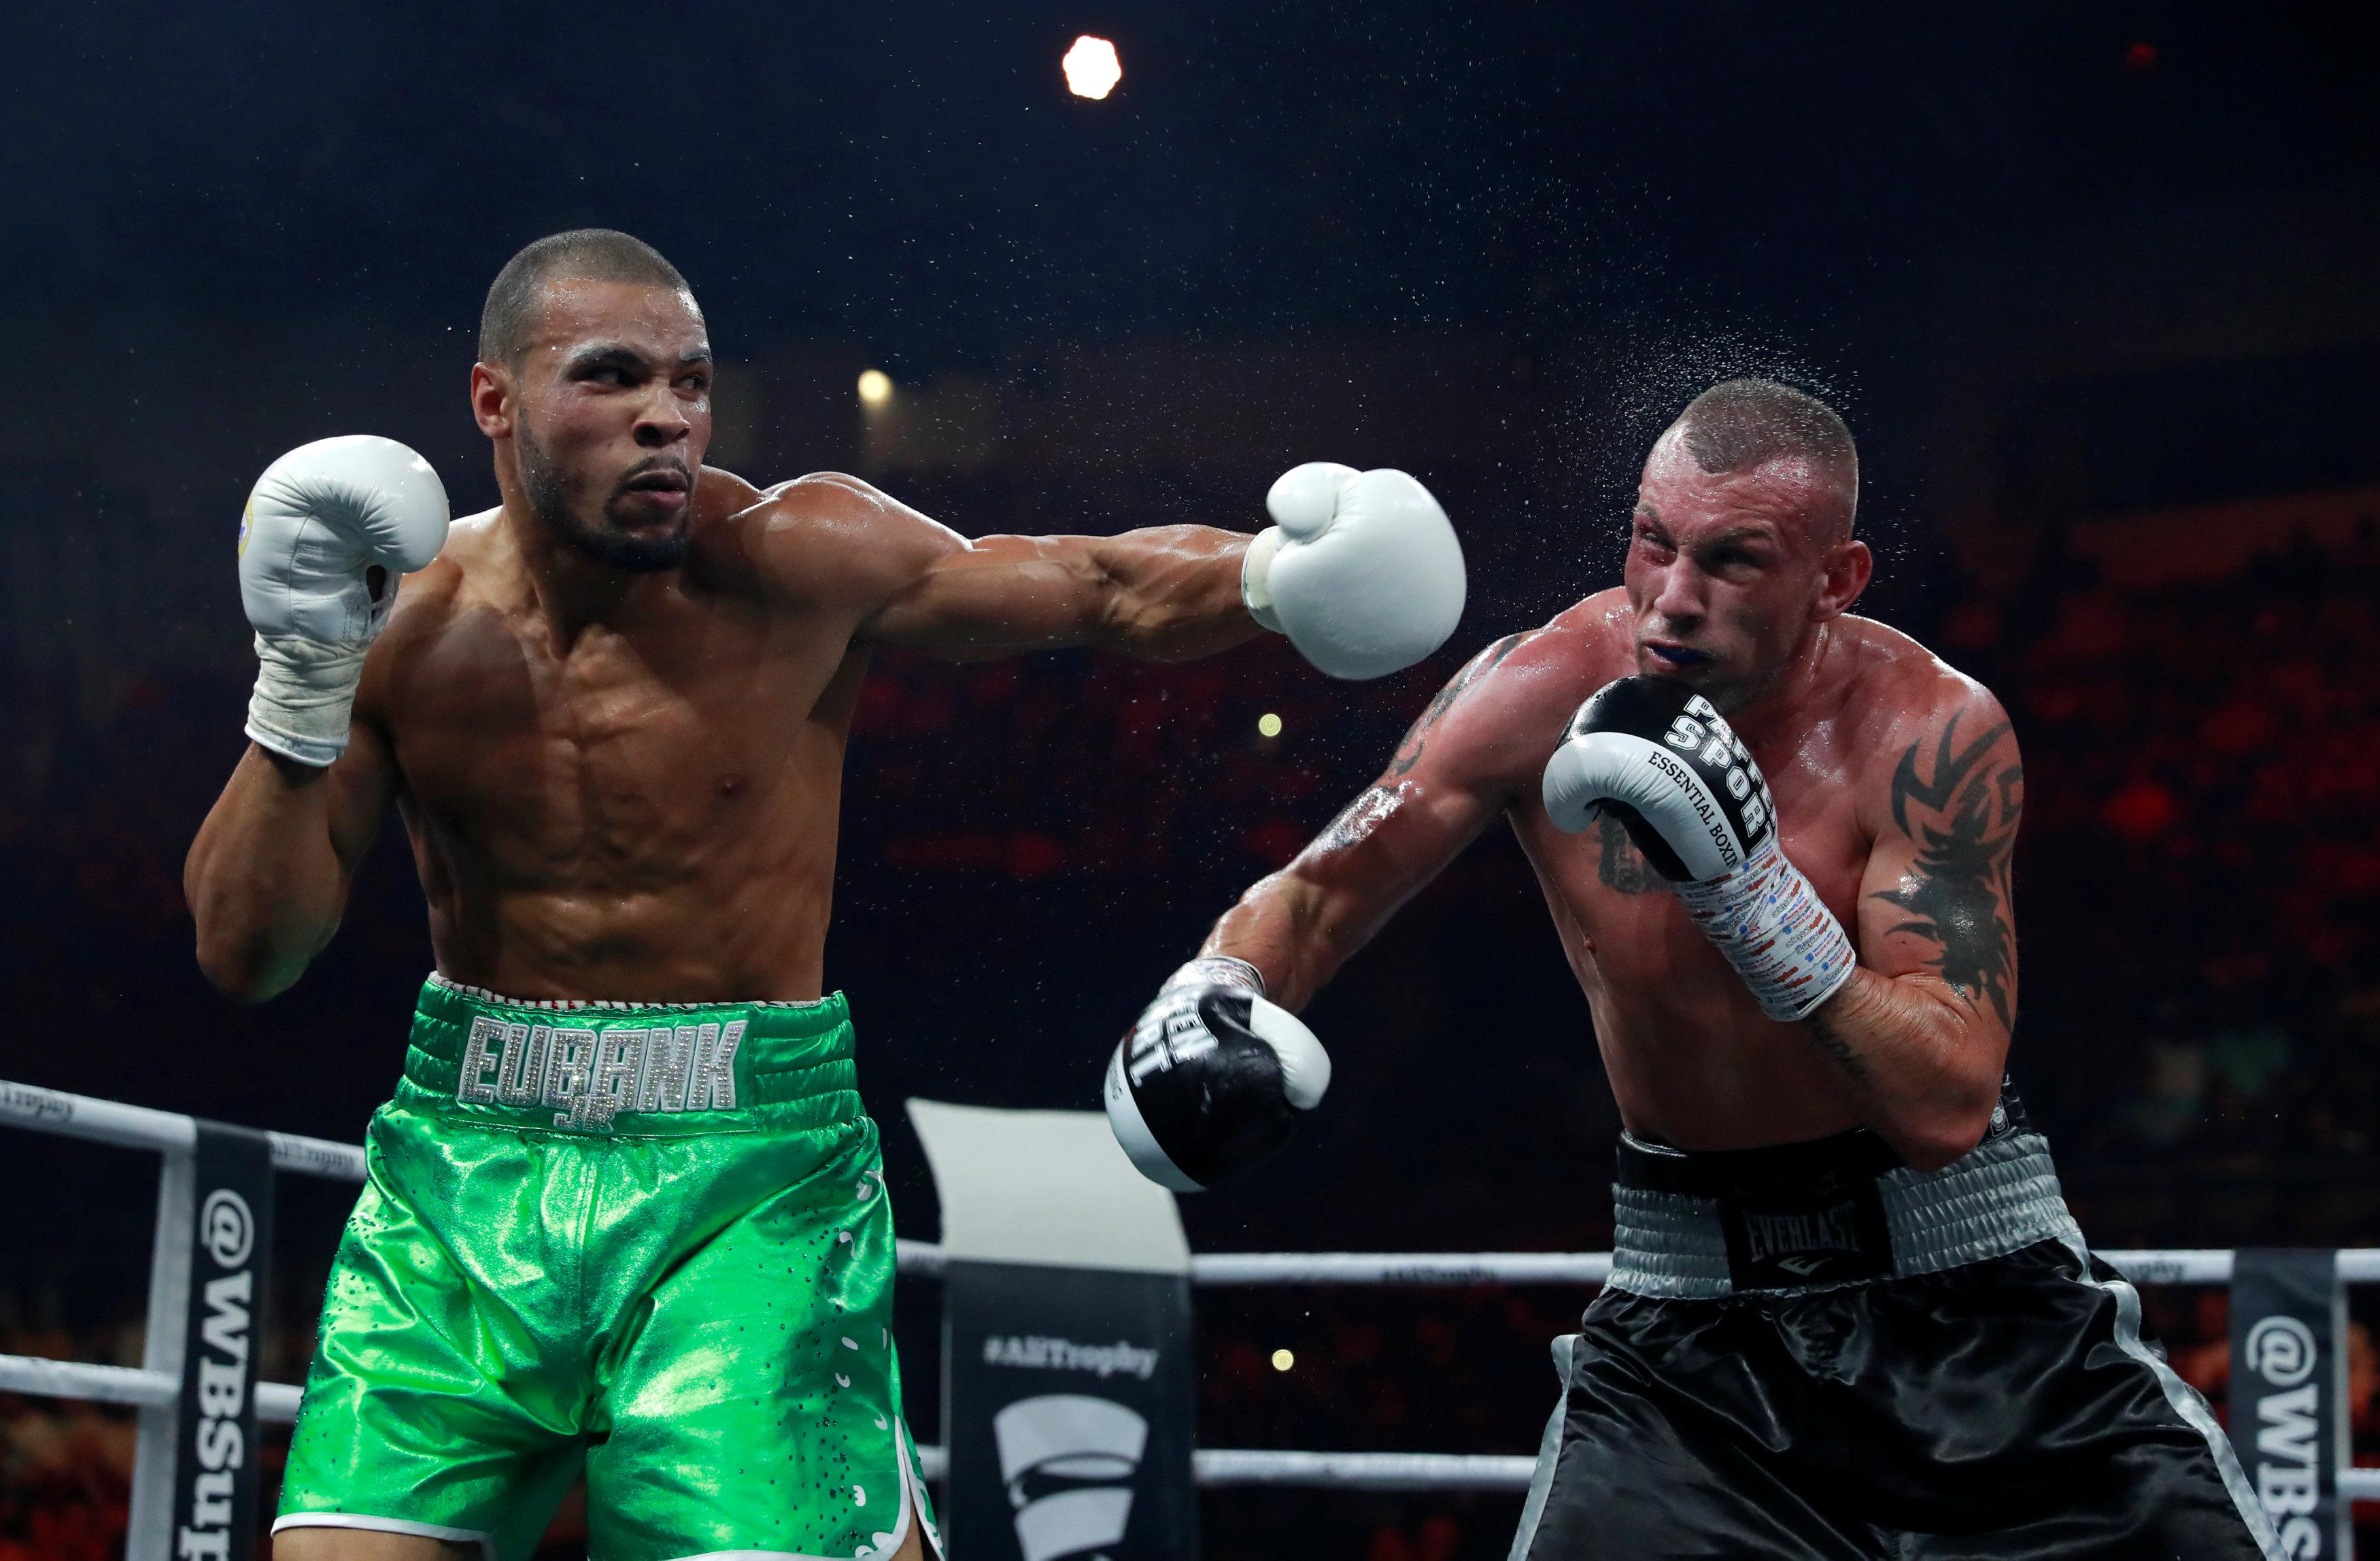 Eubank Jr comfortably beat McDonagh in three rounds having floored him early in the fight with a left-hook